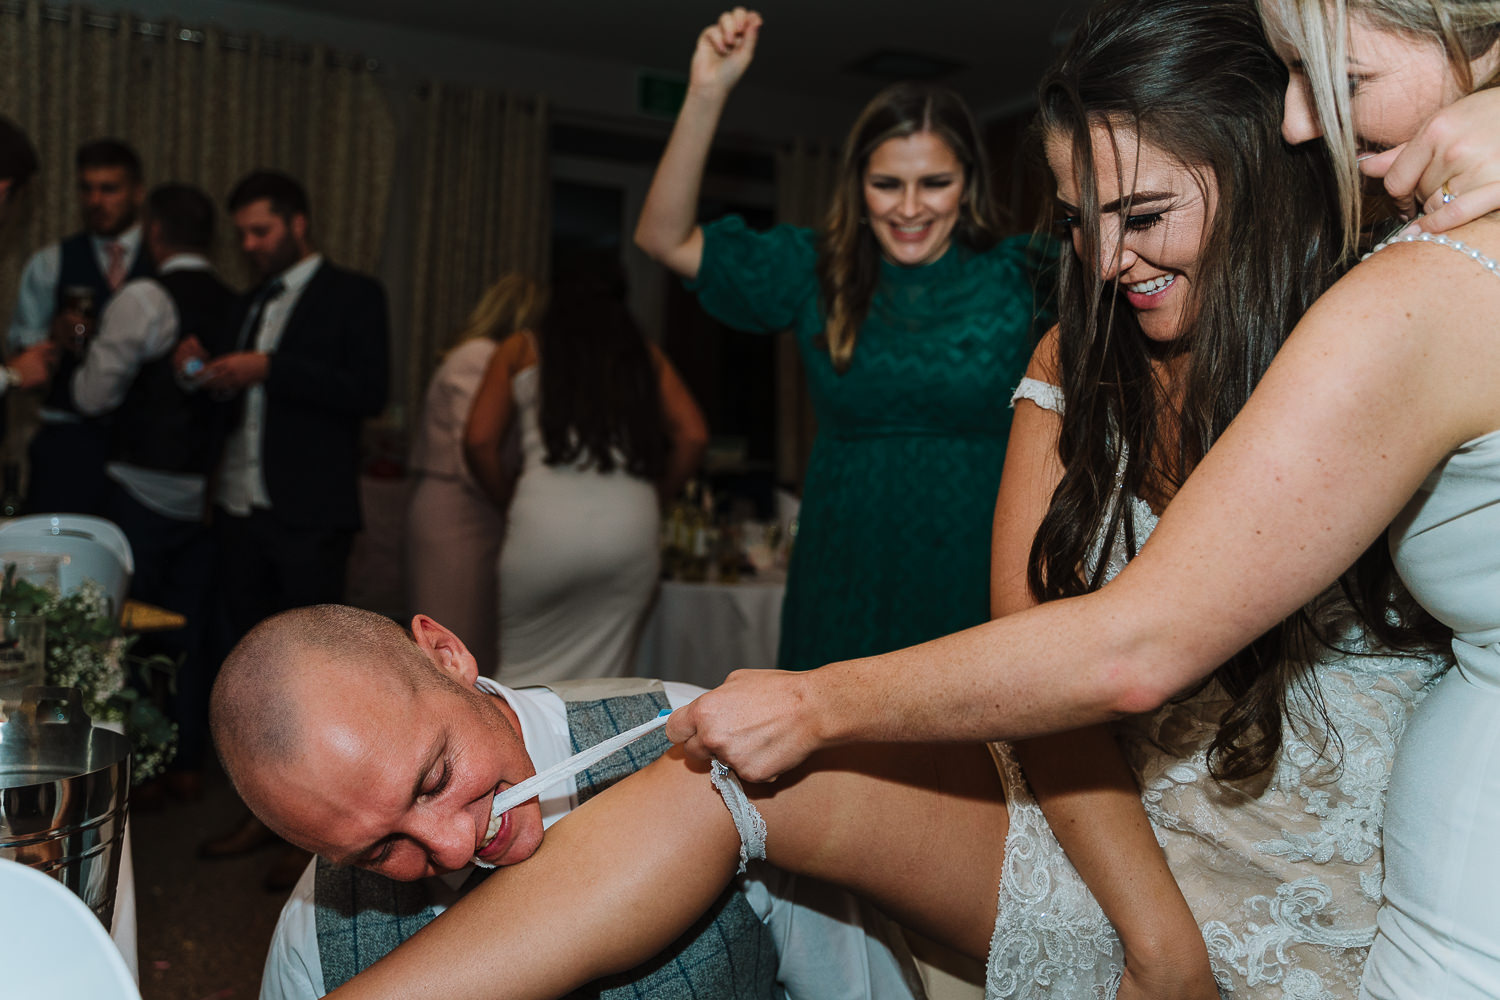 Groom biting part of brides dress